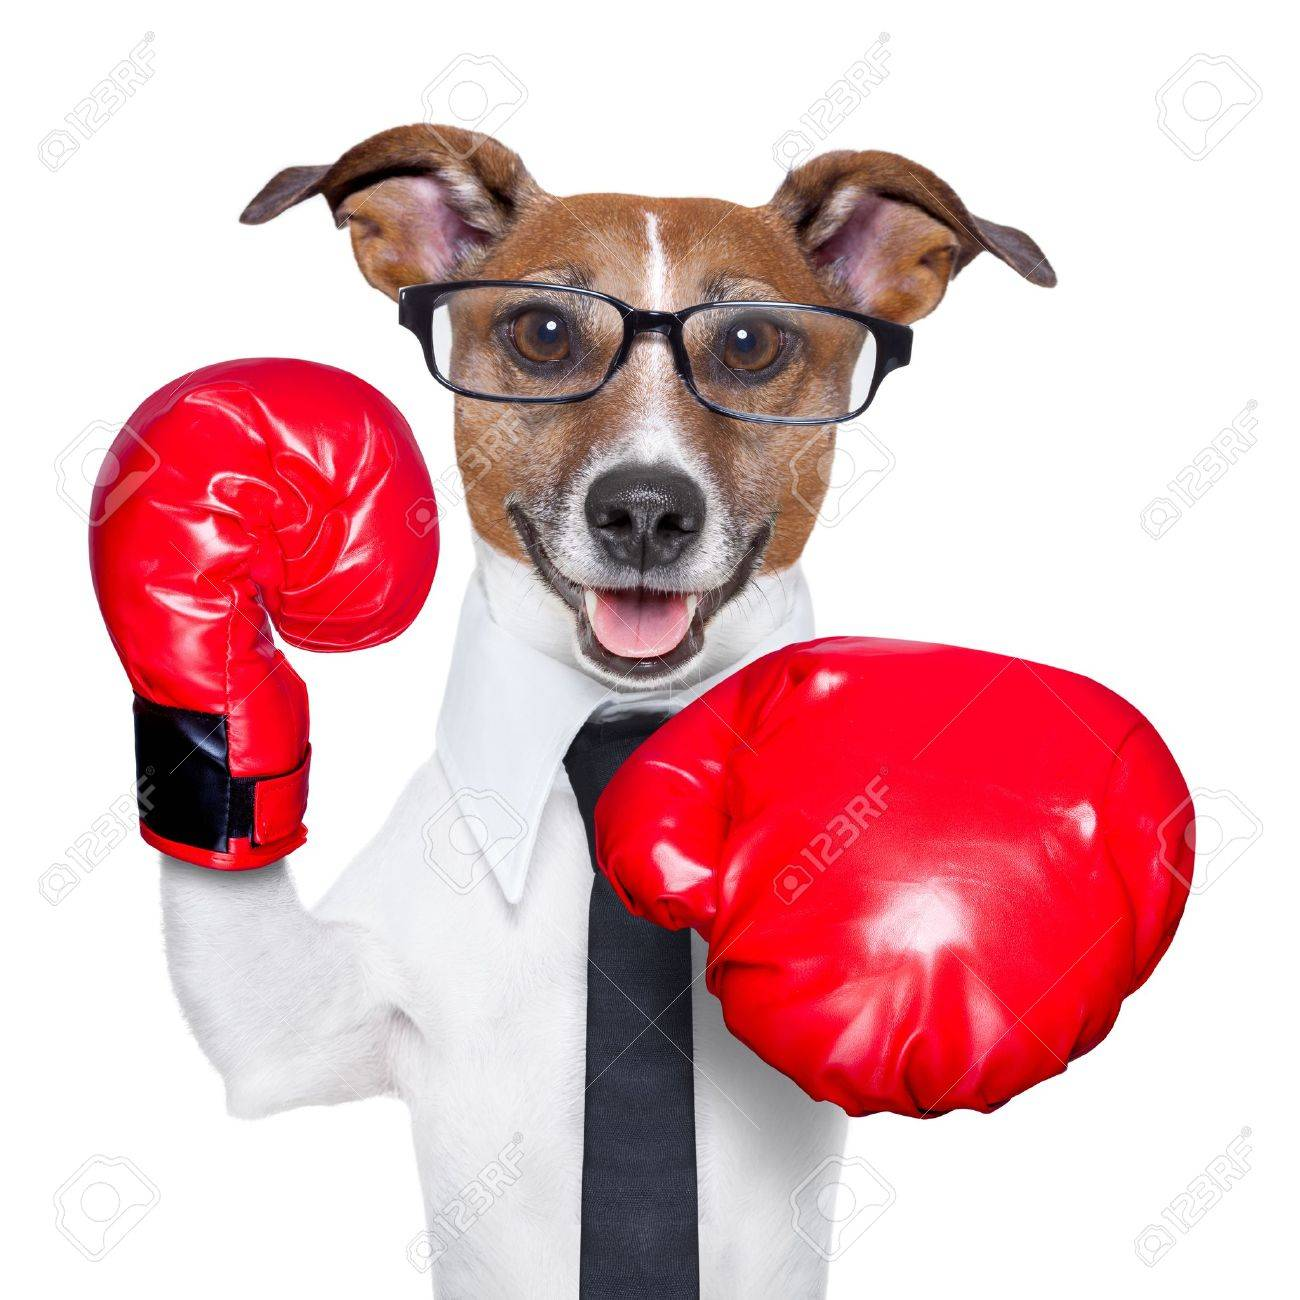 Boxing business dog punching towards camera with red boxing gloves Stock Photo - 19294025